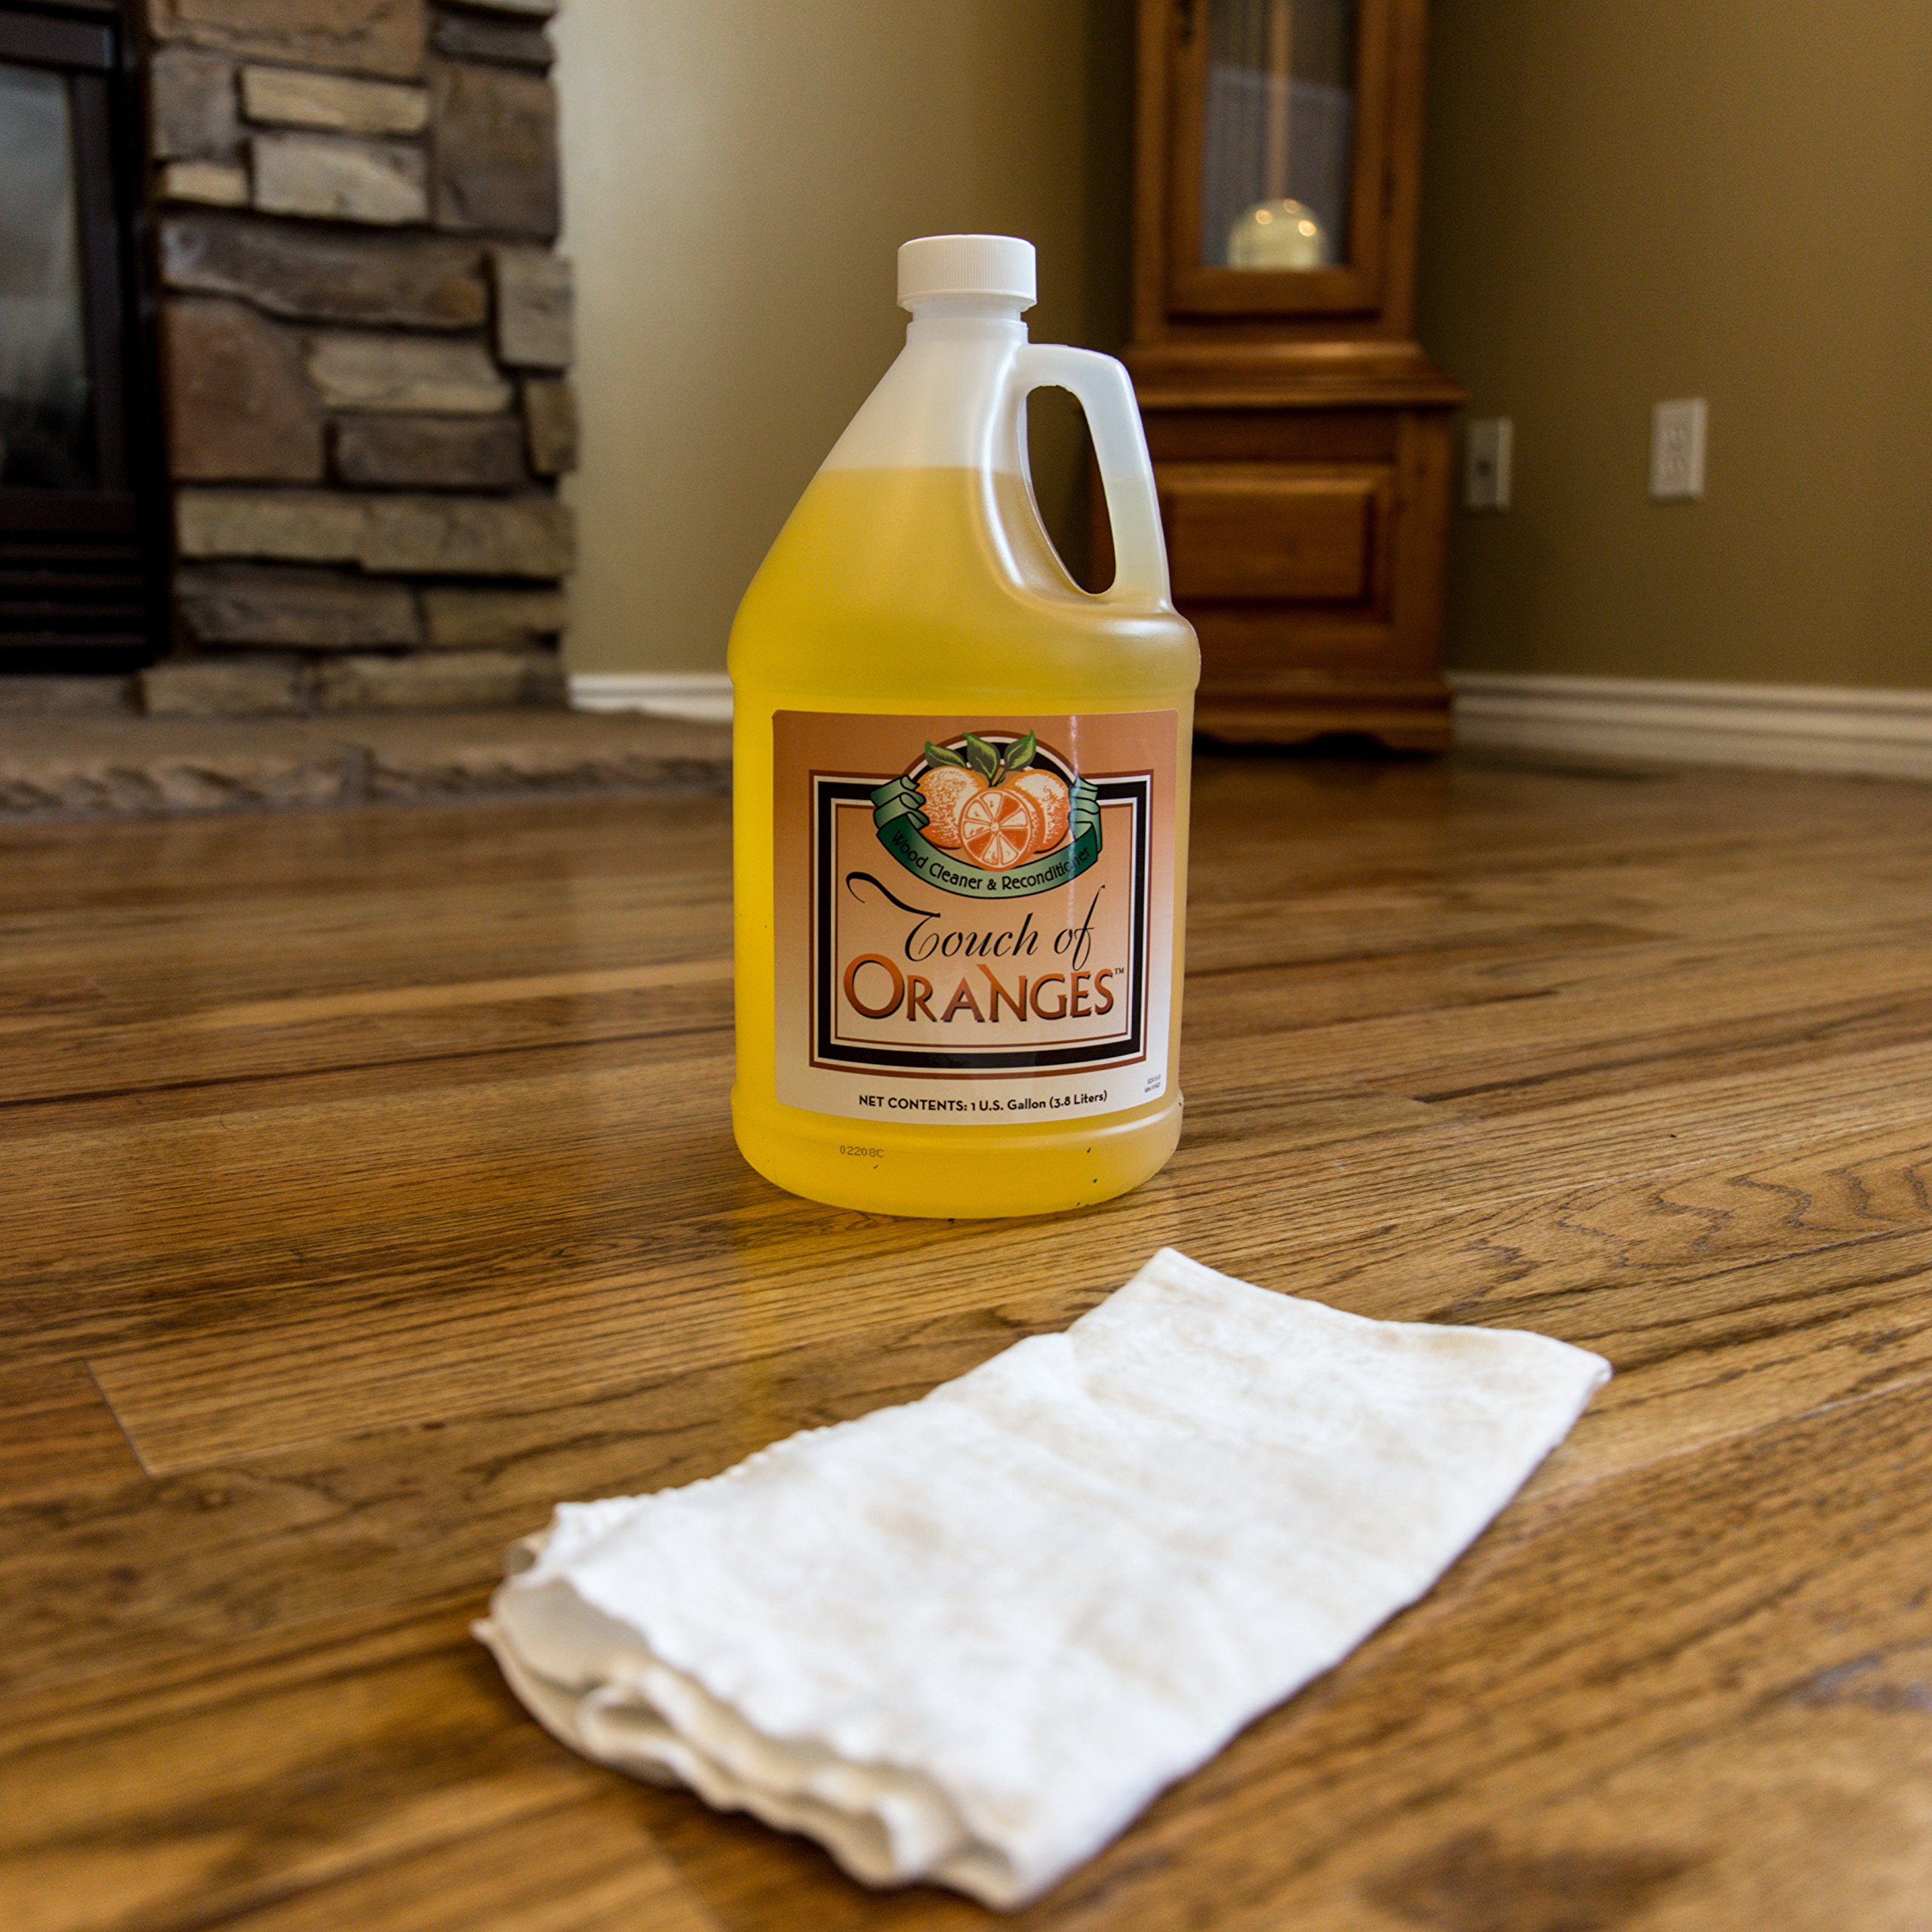 Touch of Oranges Hardwood Floor Cleaner and Touch of Beeswax for Wood Polish Cleaner and Restorer Bundle (1 gallon Cleaner & 1/2 gallon Polish) by Touch Of Oranges (Image #7)